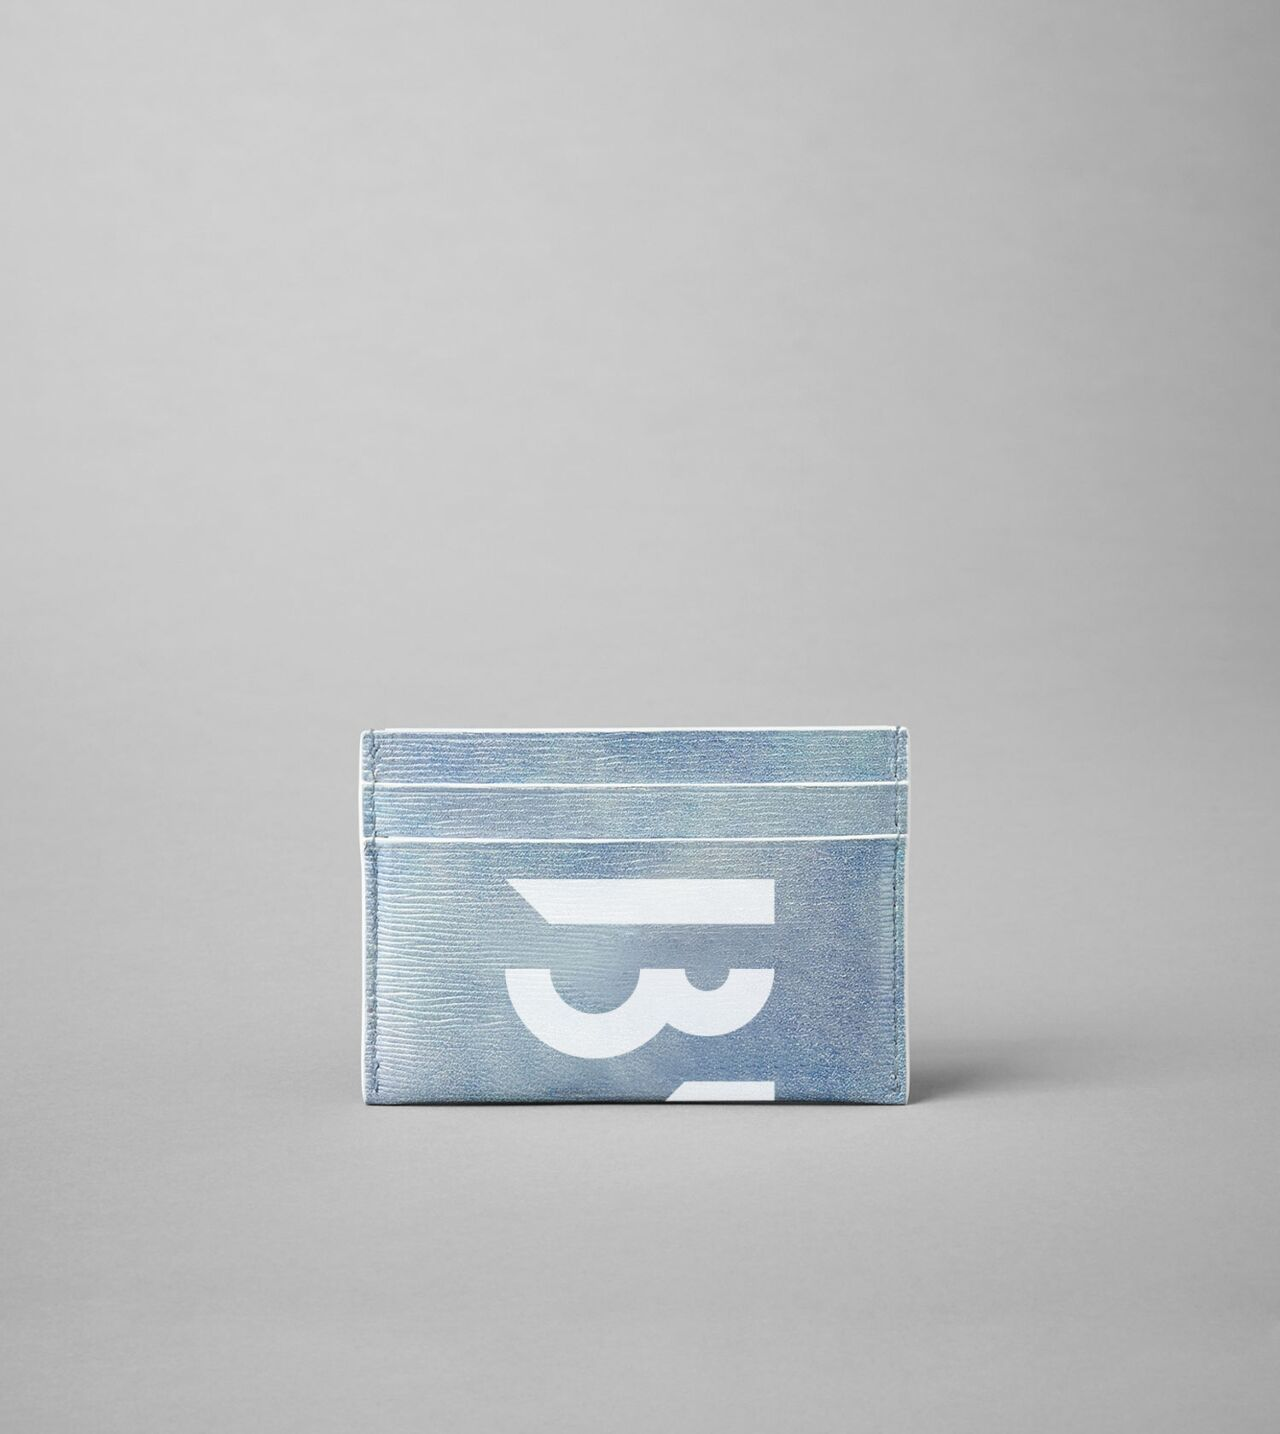 Picture of Byredo Credit card holder in Sky blue